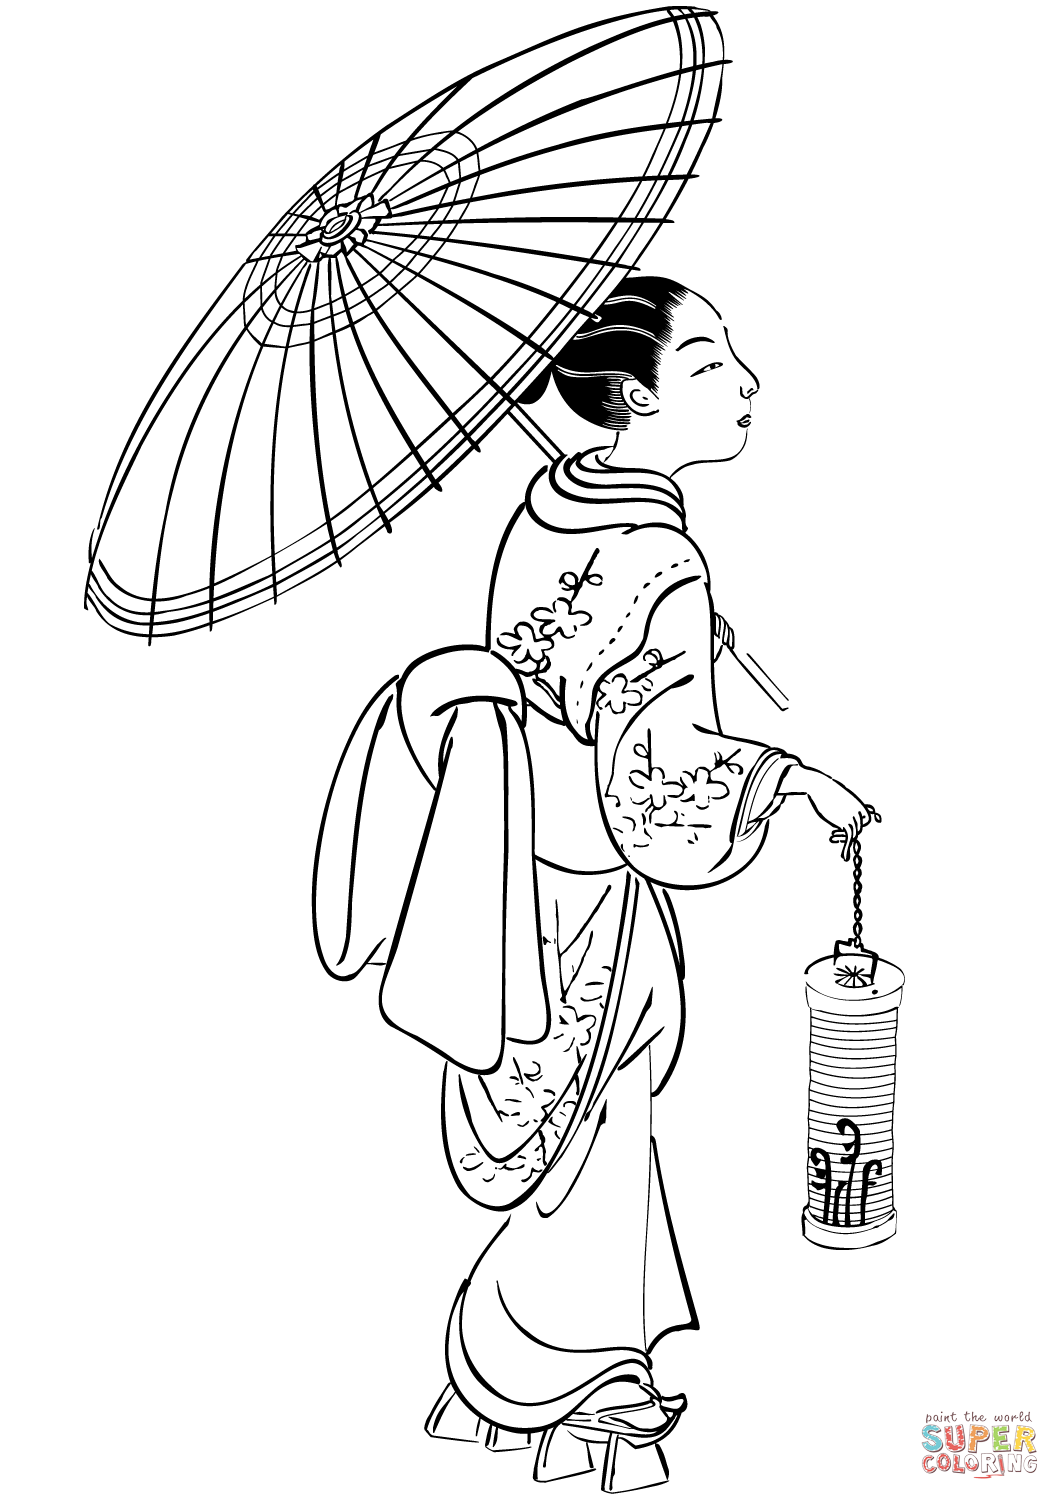 1060x1500 Japanese Woman With Umbrella And Lantern Coloring Page Free